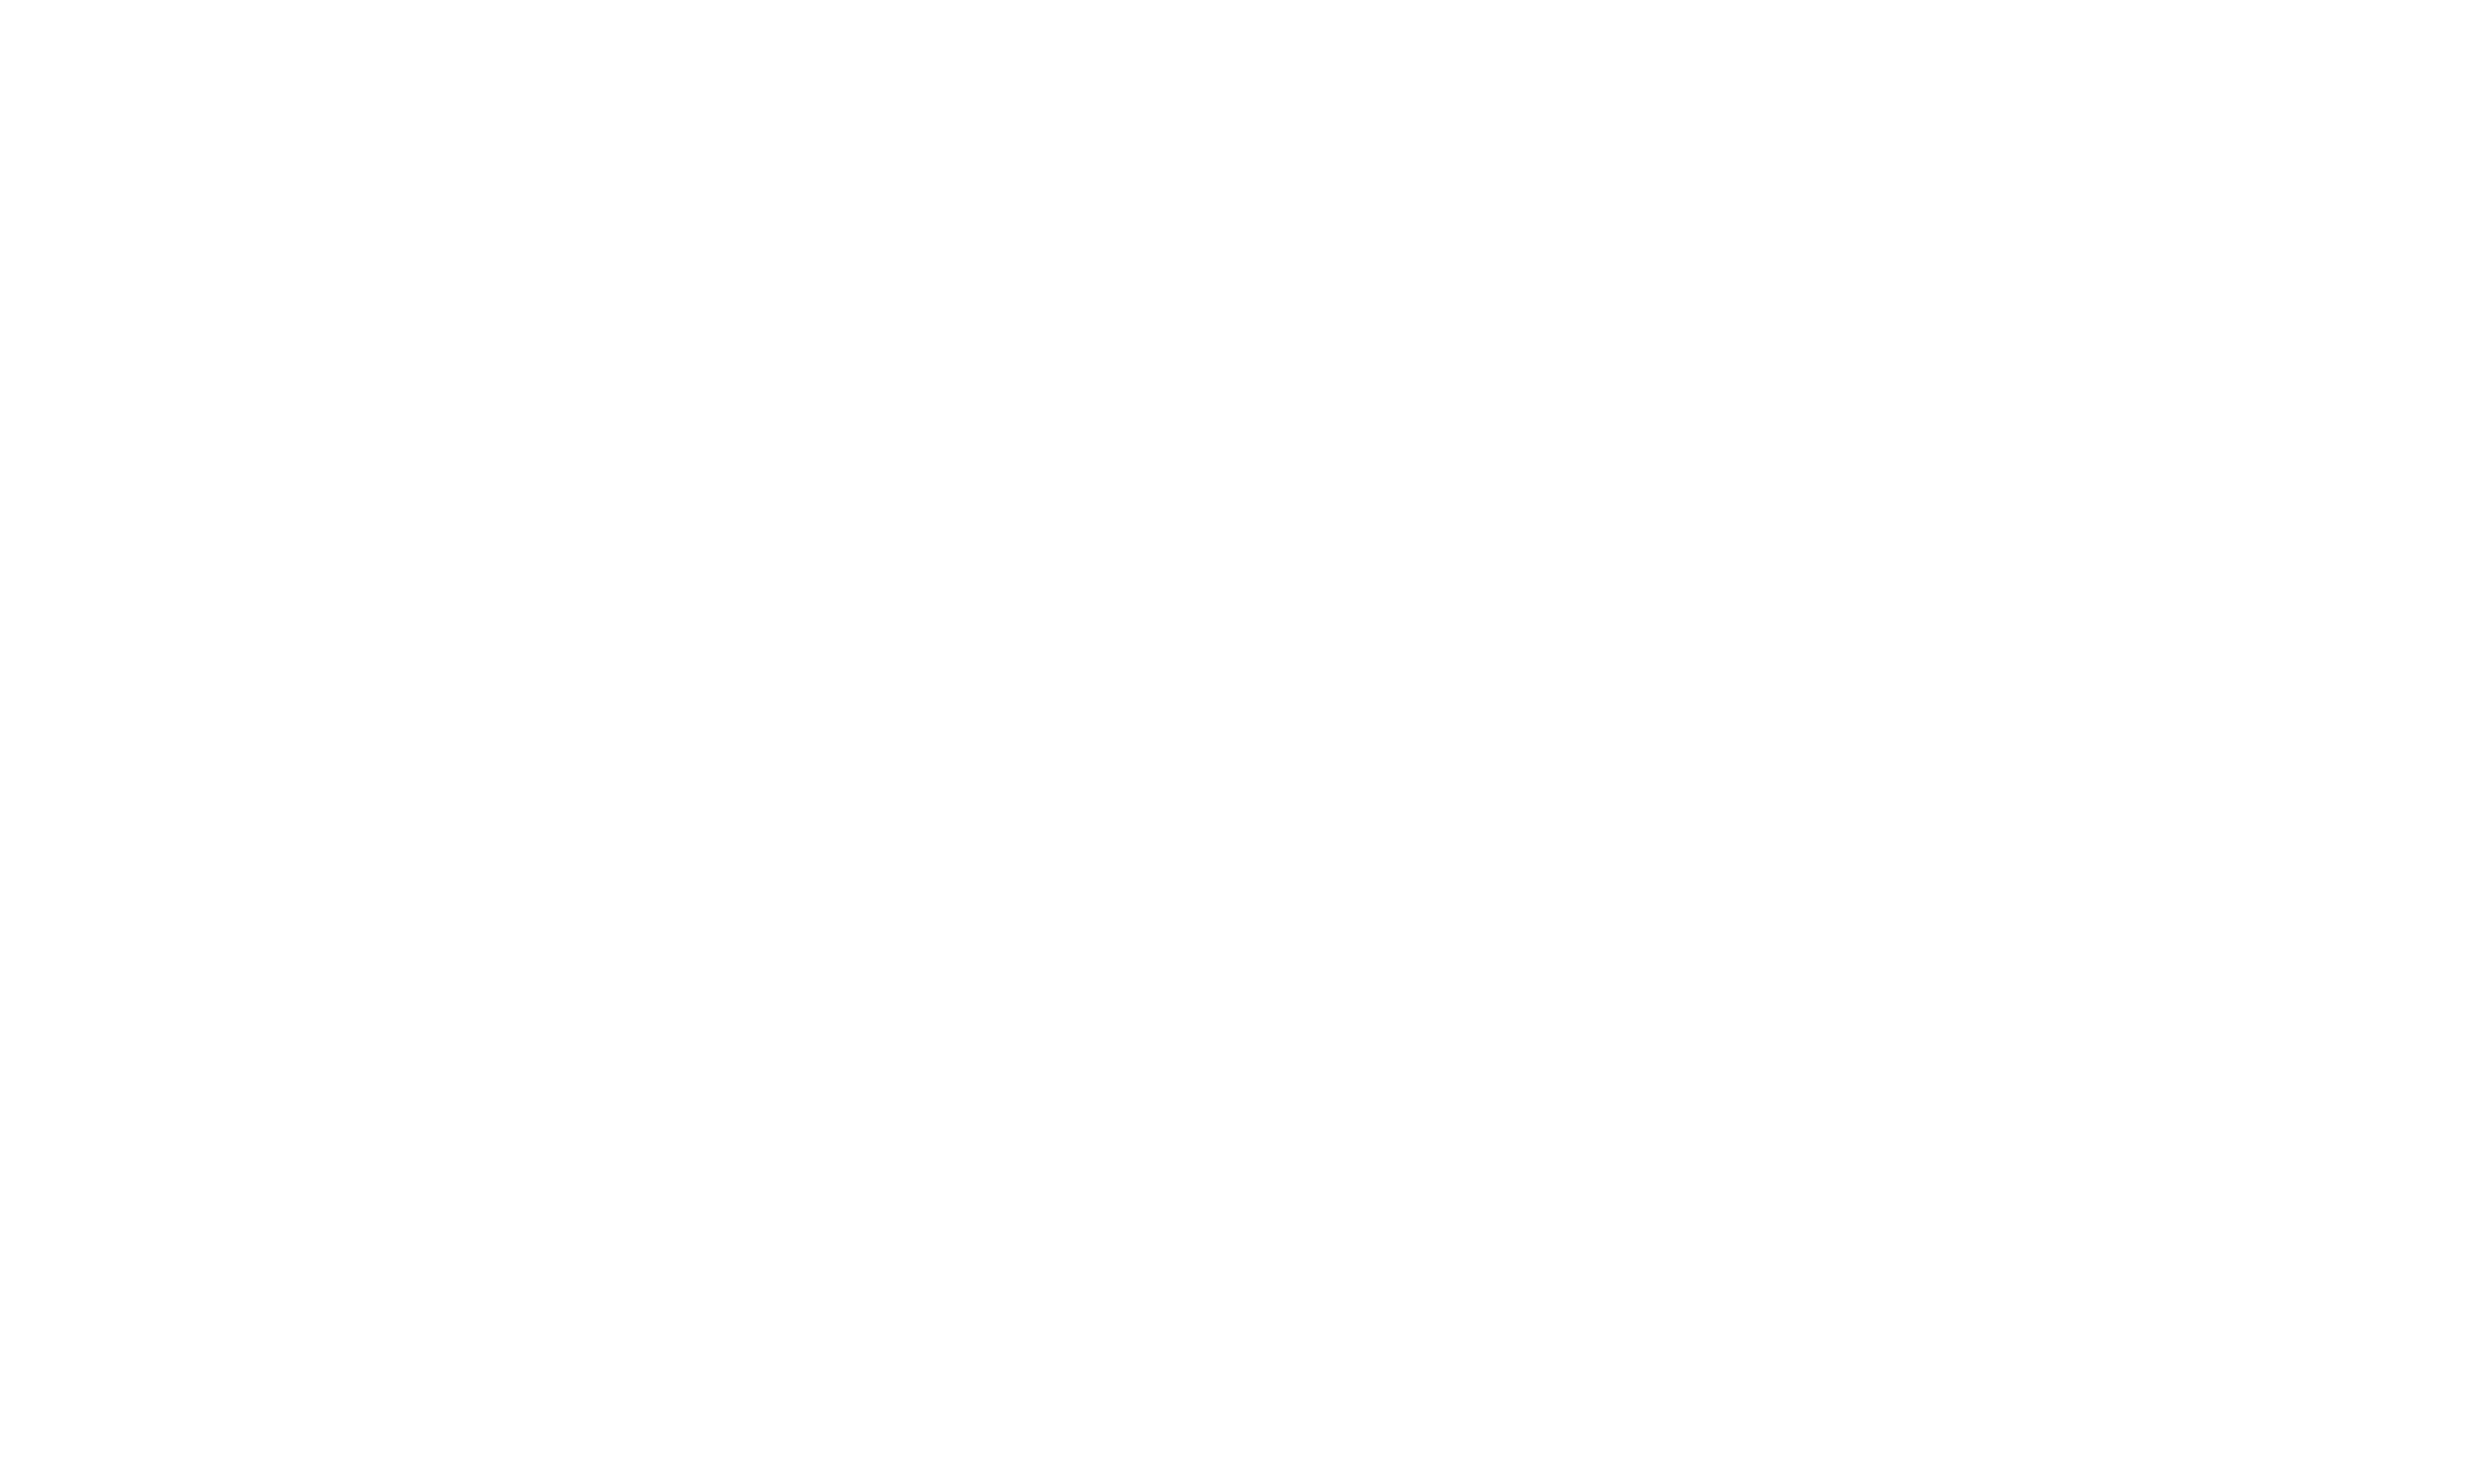 Flow Event Solutions | Audium | Audiovisuele producties en verhuur op broadcastmarkt Ranst